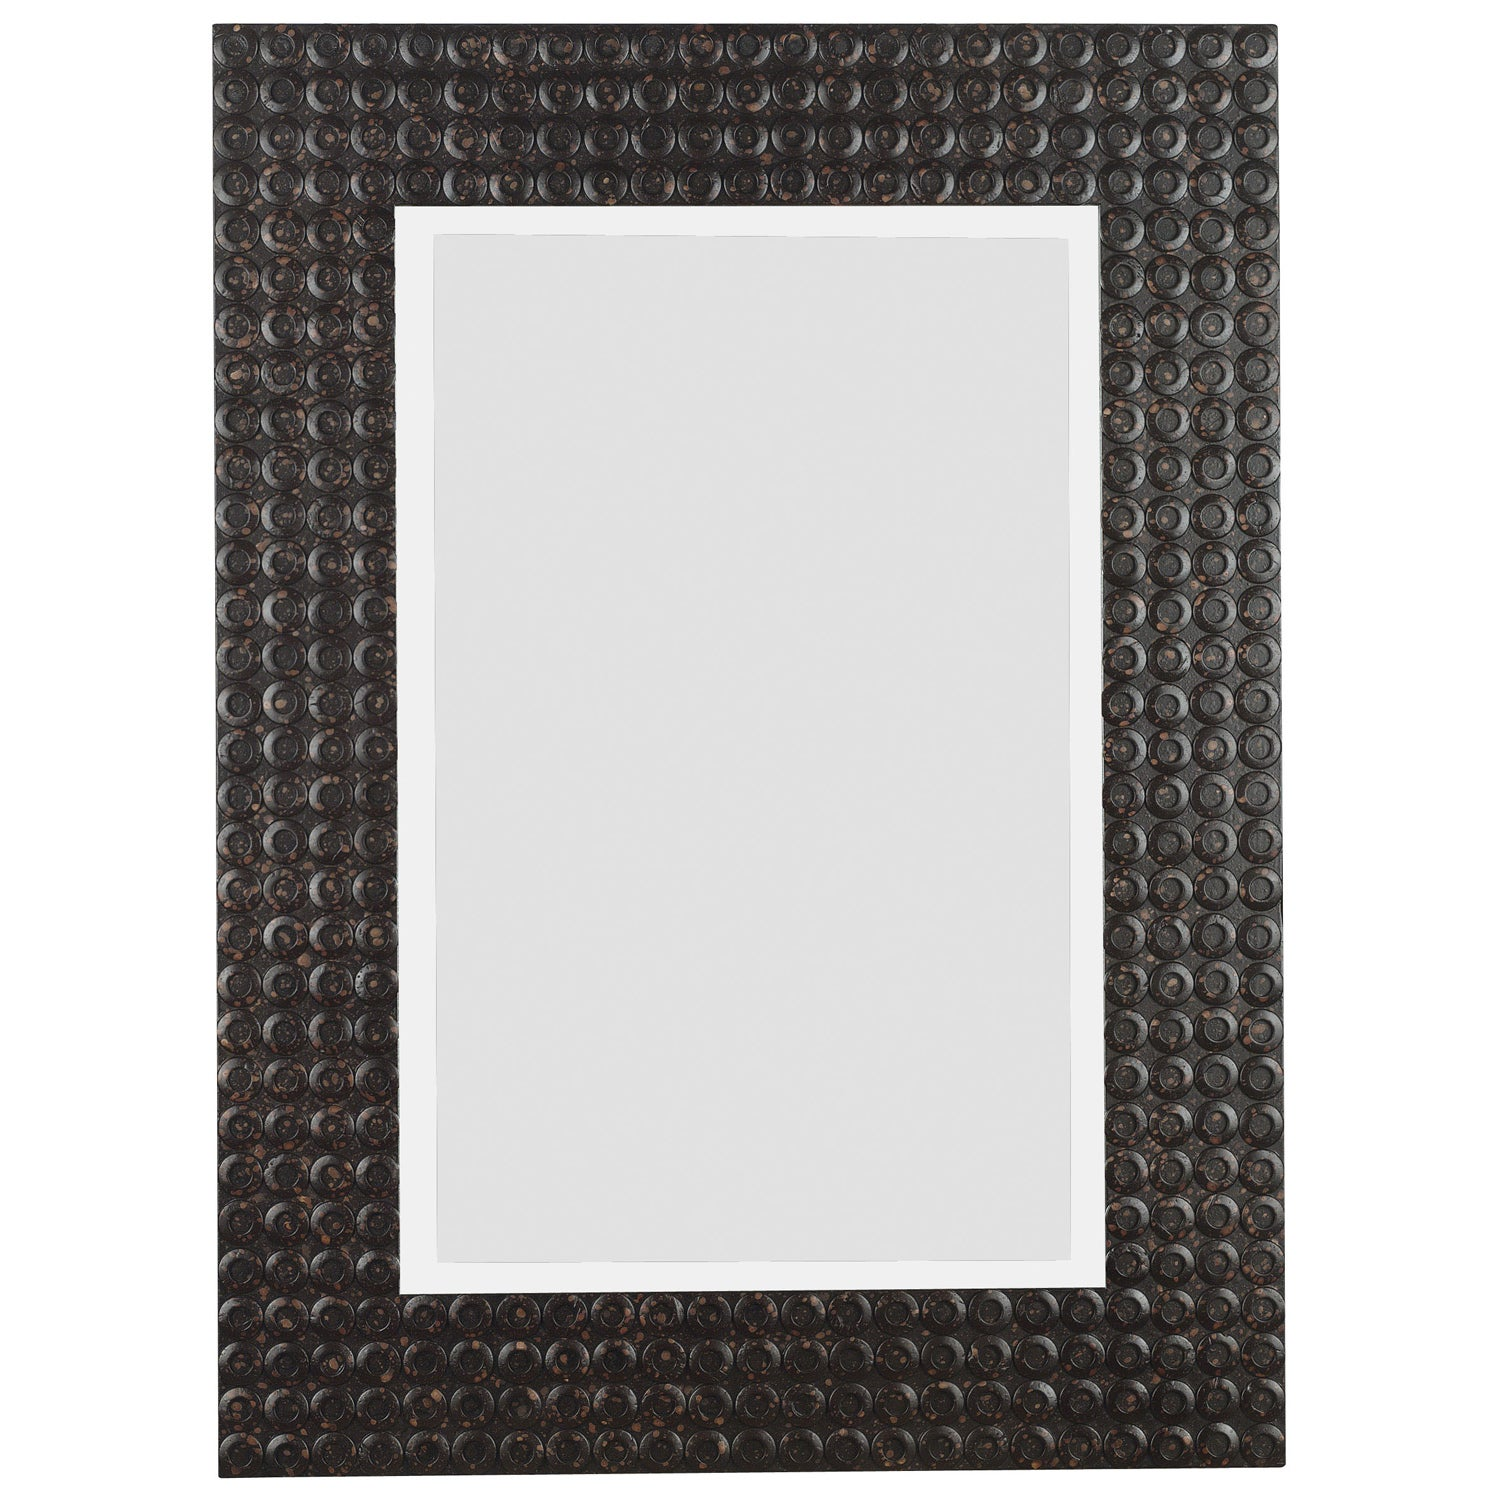 St. Lucie Black Multi-Finish Wall Mirror (38 x 28)